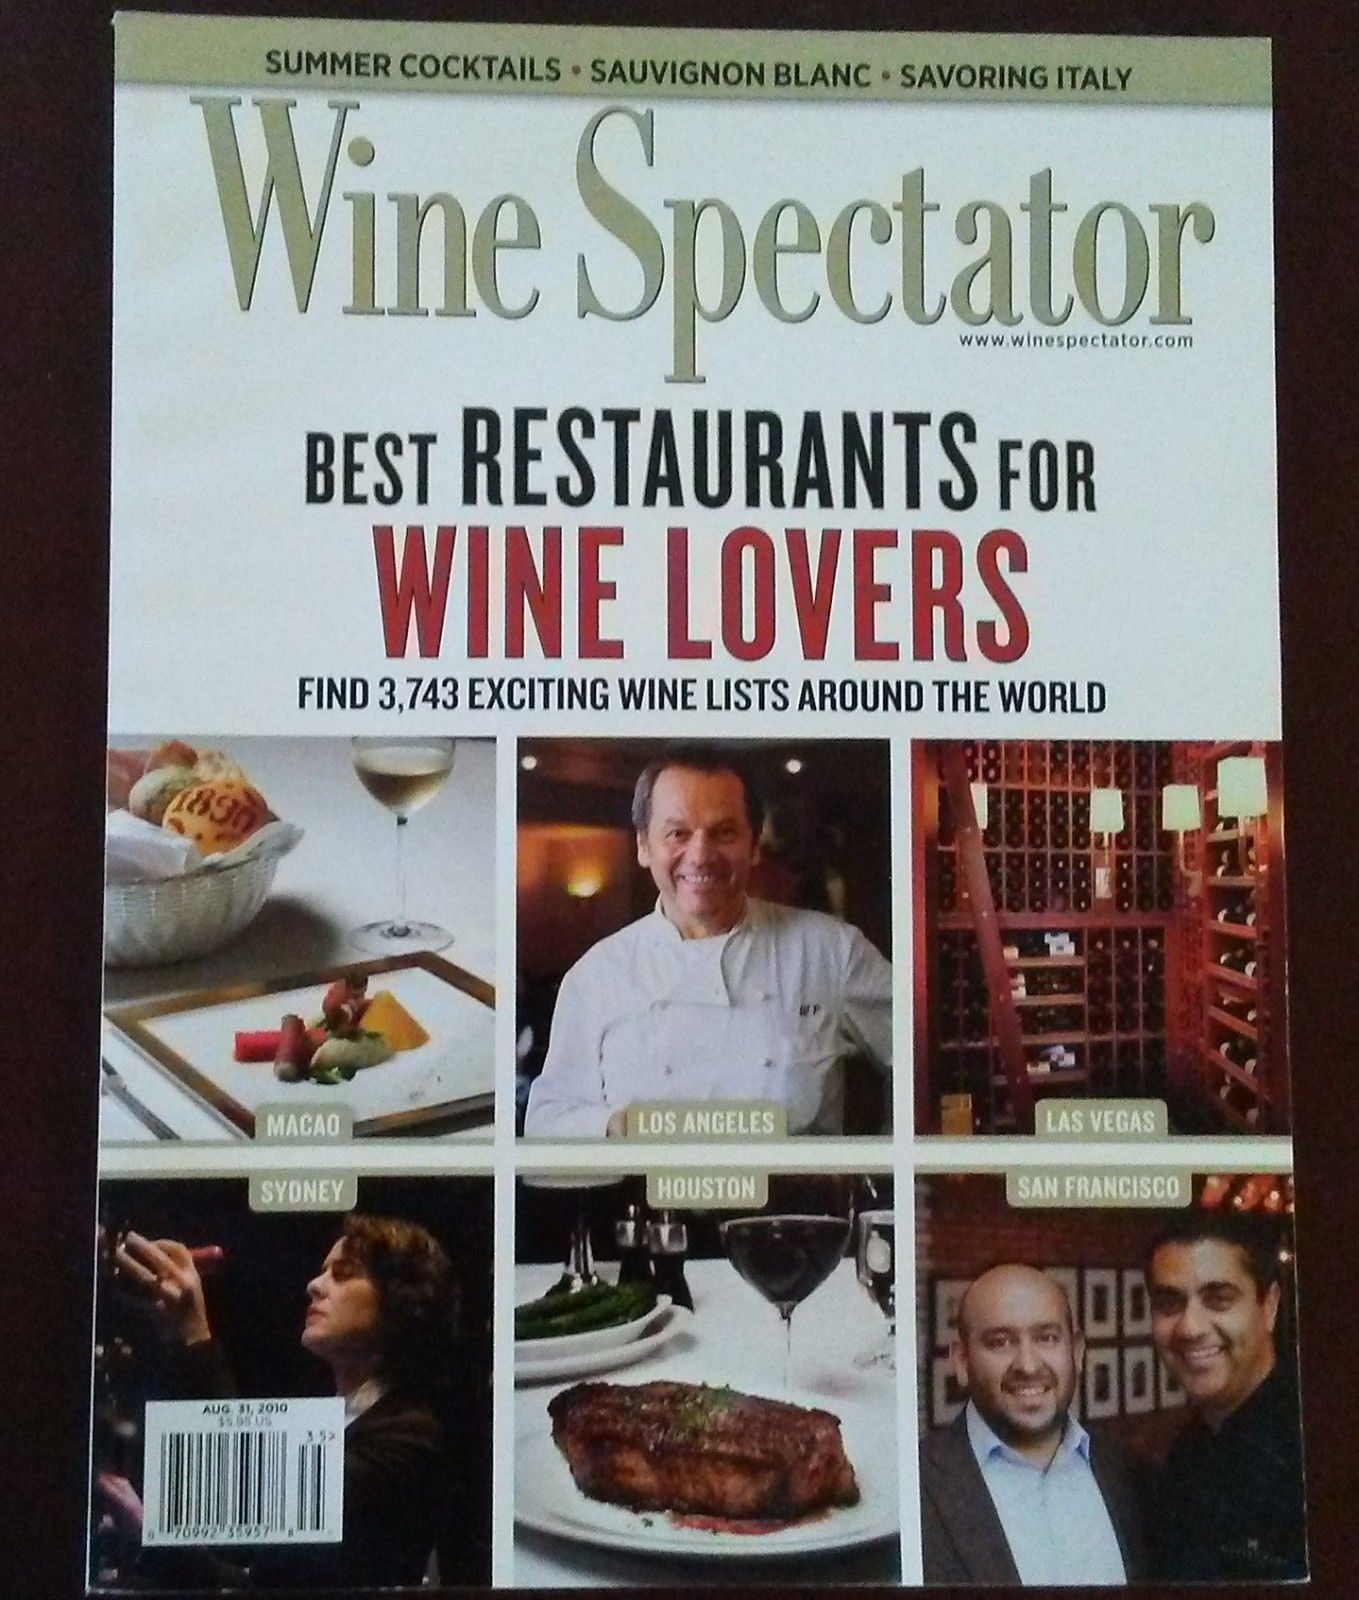 WINE SPECTATOR MAGAZINE August 2010 Best Restaurants for Wine Lovers